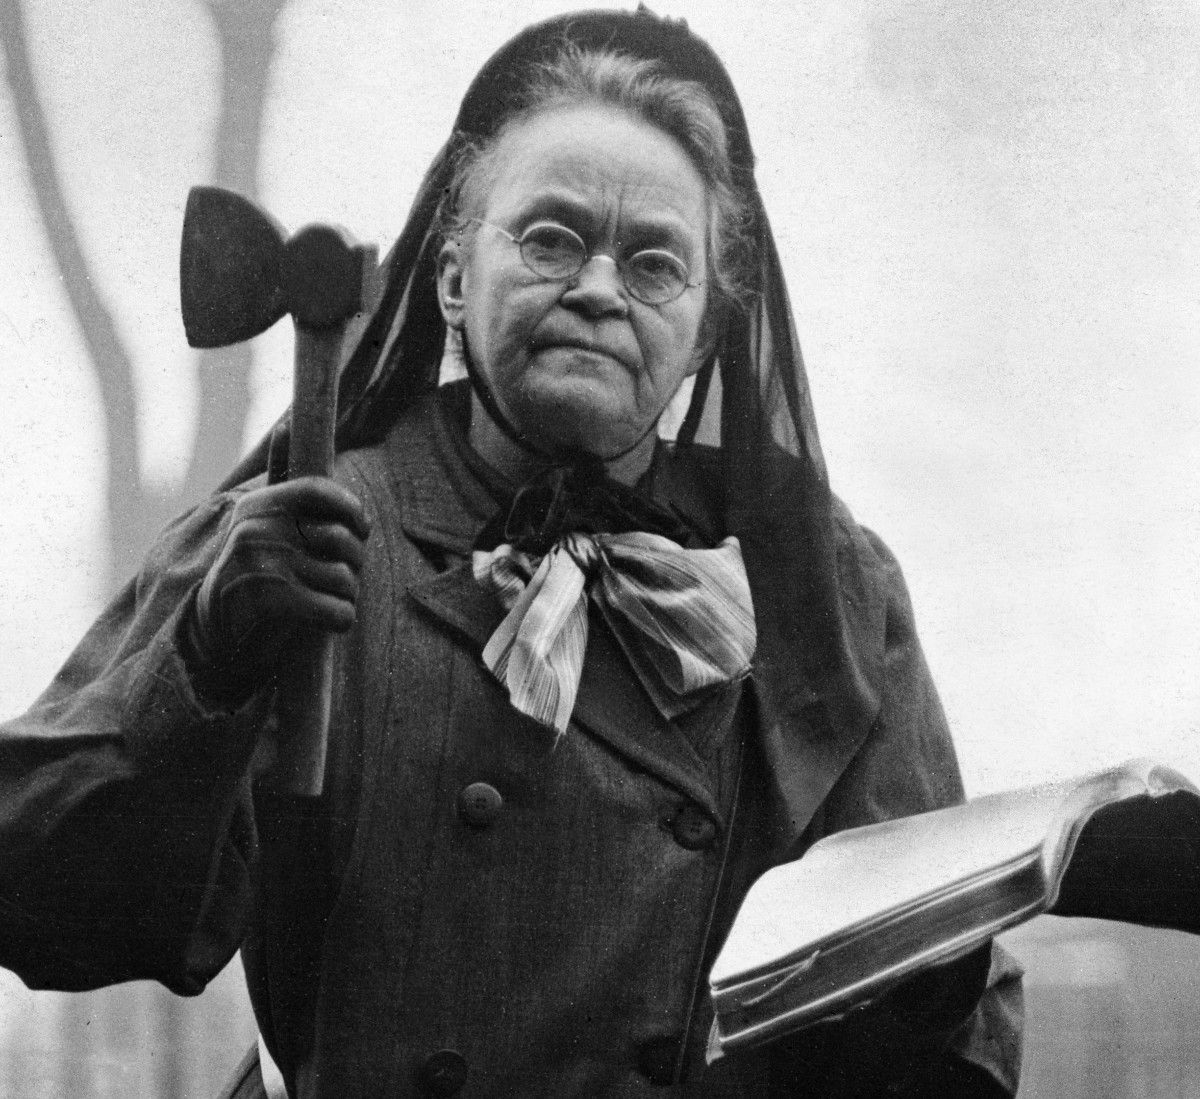 carrie-nation-feature-543882879.jpg